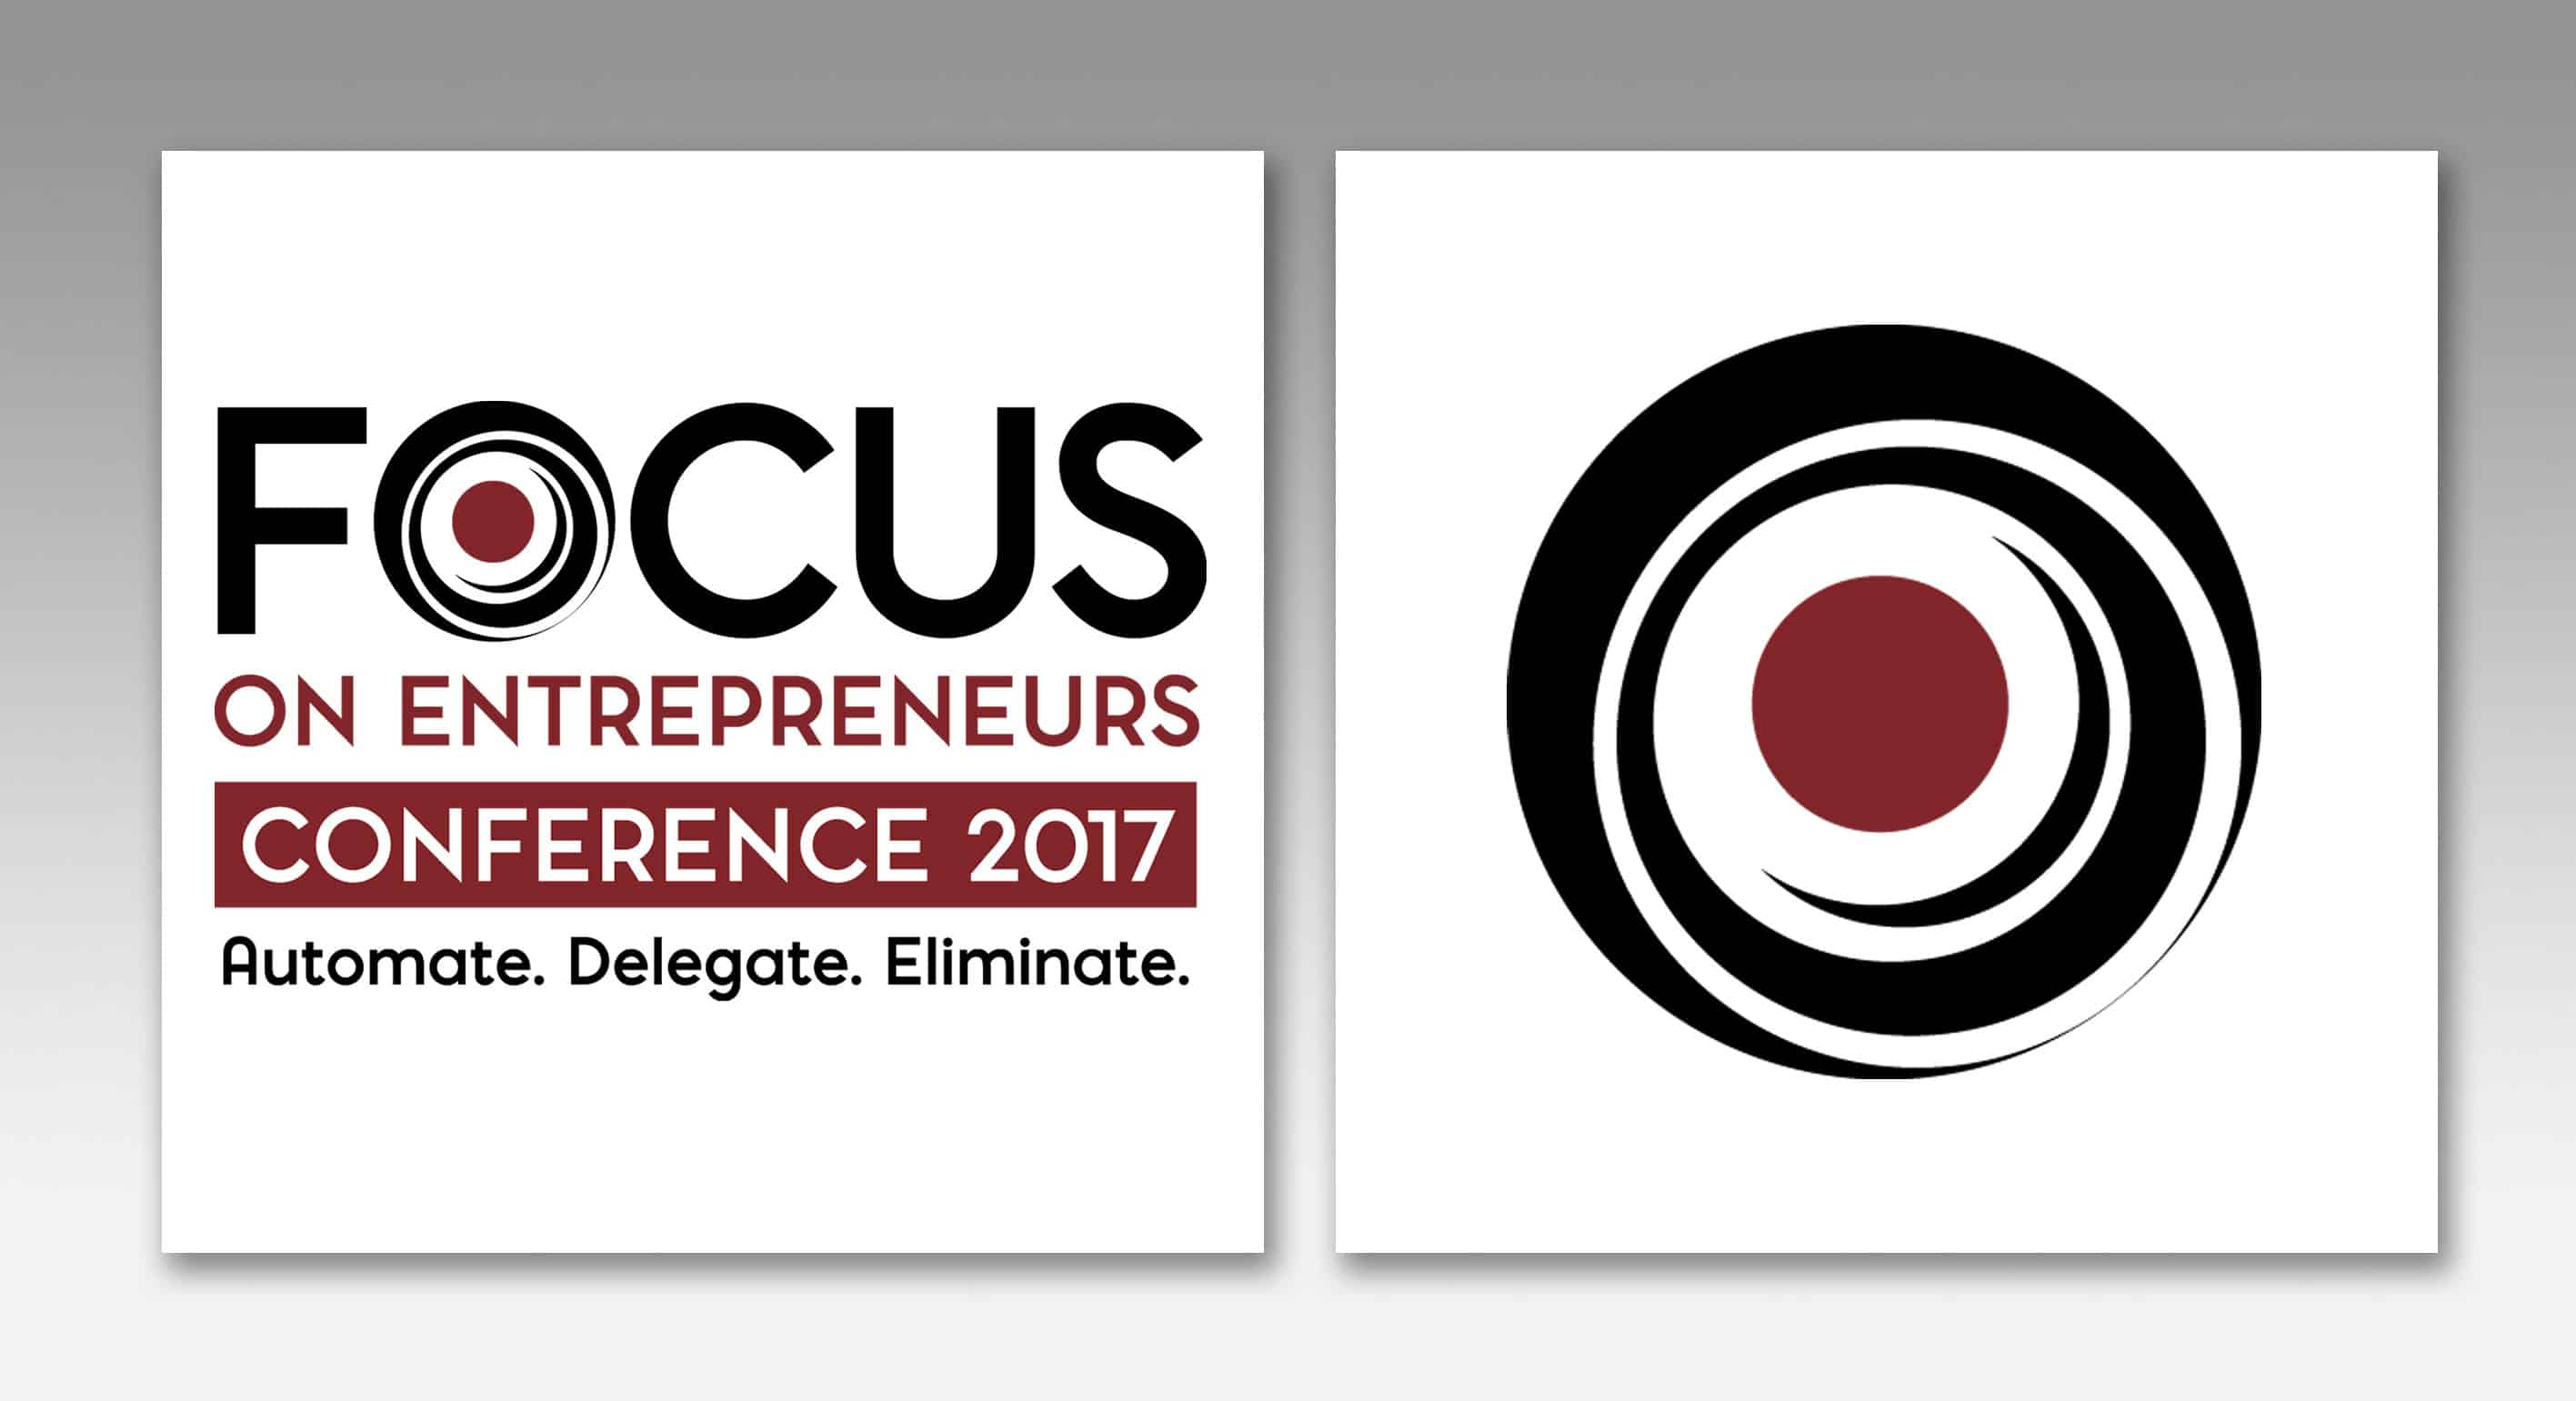 Focus on Entrepreneurs Conference 2017